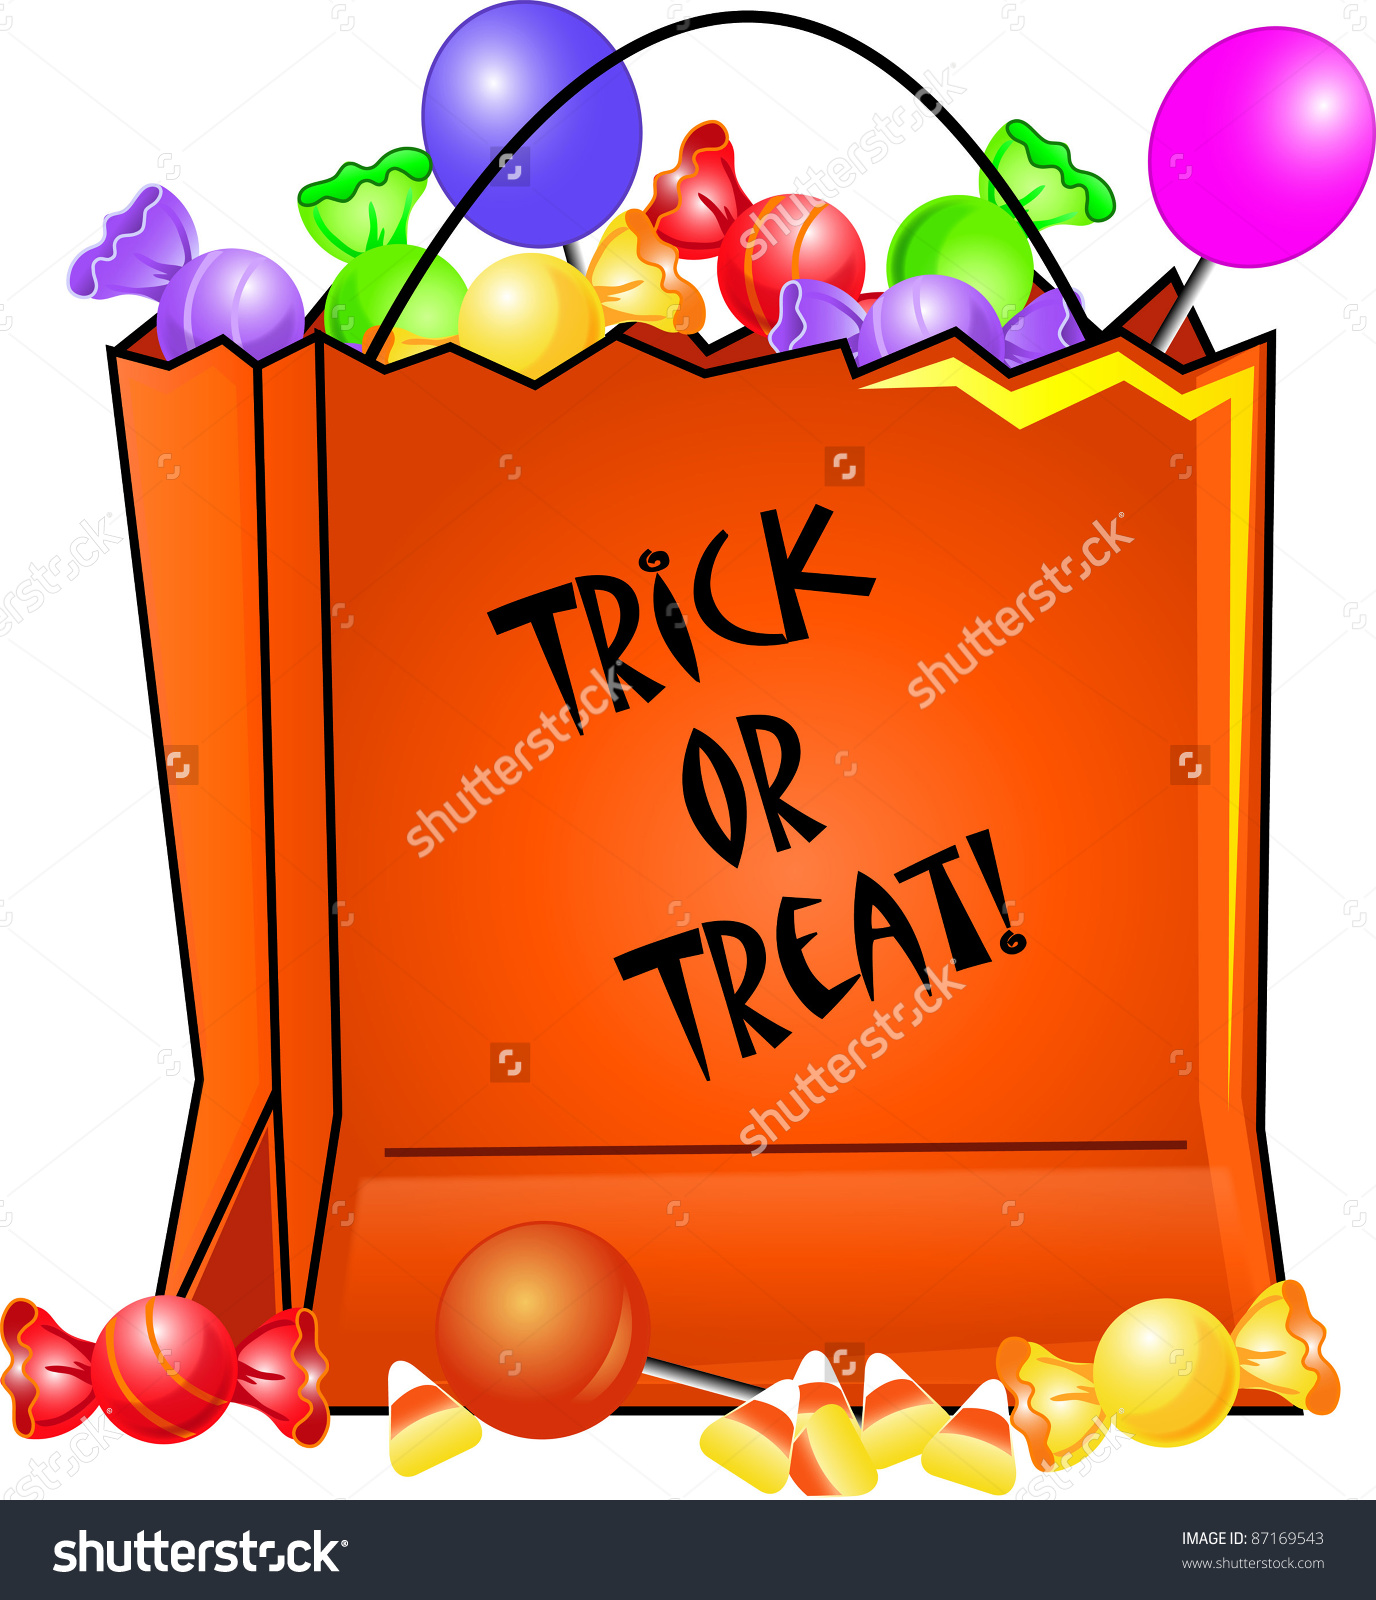 Treat clipart #10